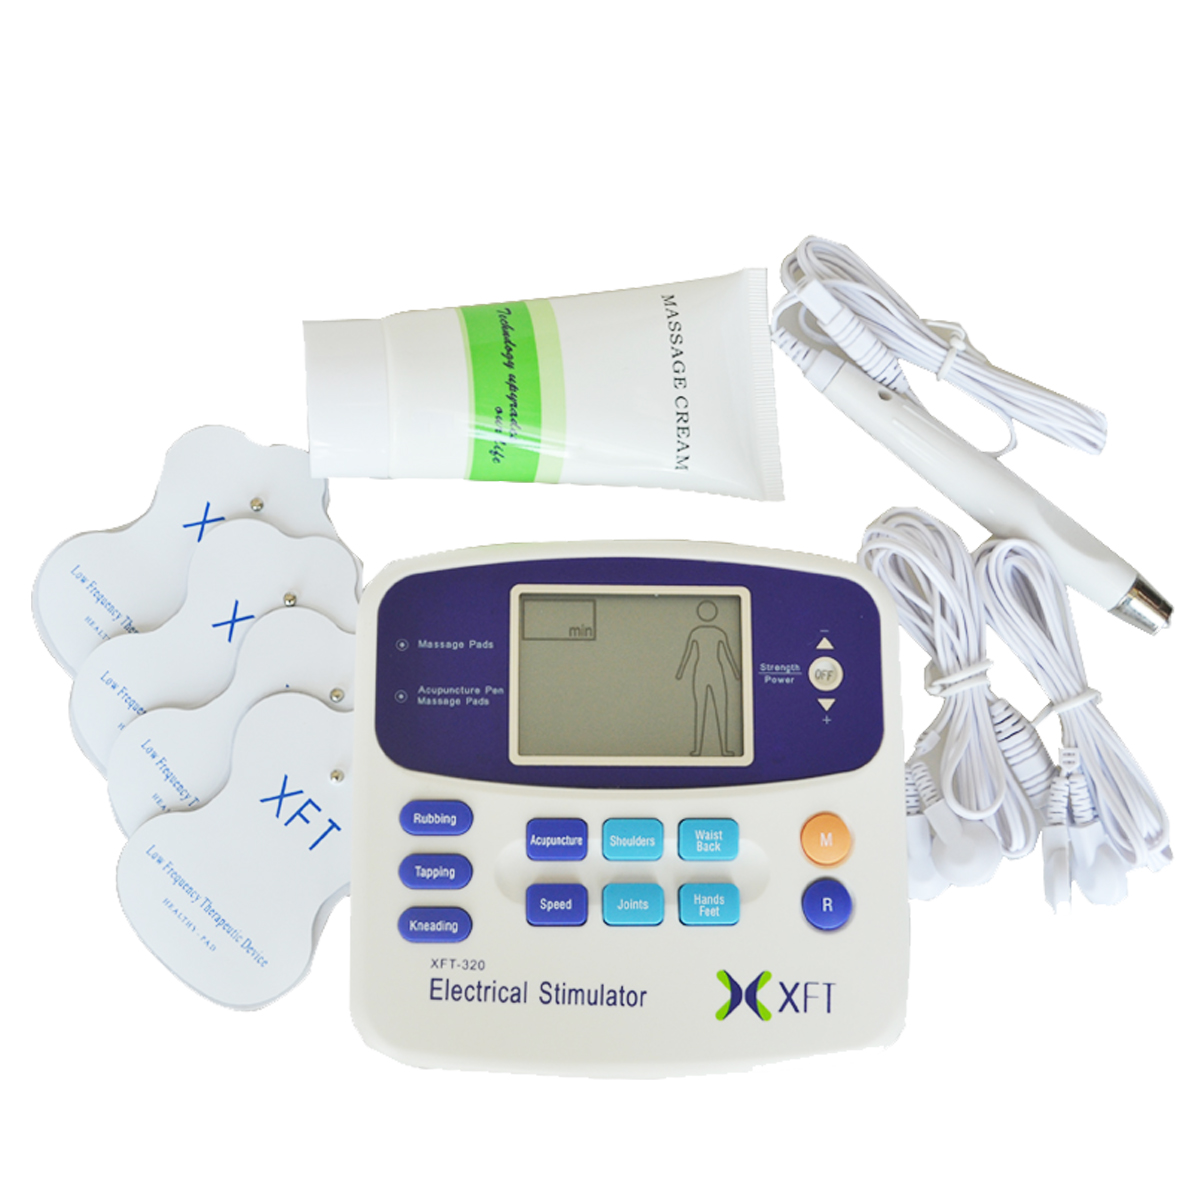 New Electrical Stimulator Massager XFT-320 Dual Tens Therapy Machine Digital Body Relaxation Unit With Electrode Pad For Healthy 2pcs lot electrical muscle stimulator massager digital therapy massage device xft 320 dual tens unit full body health care